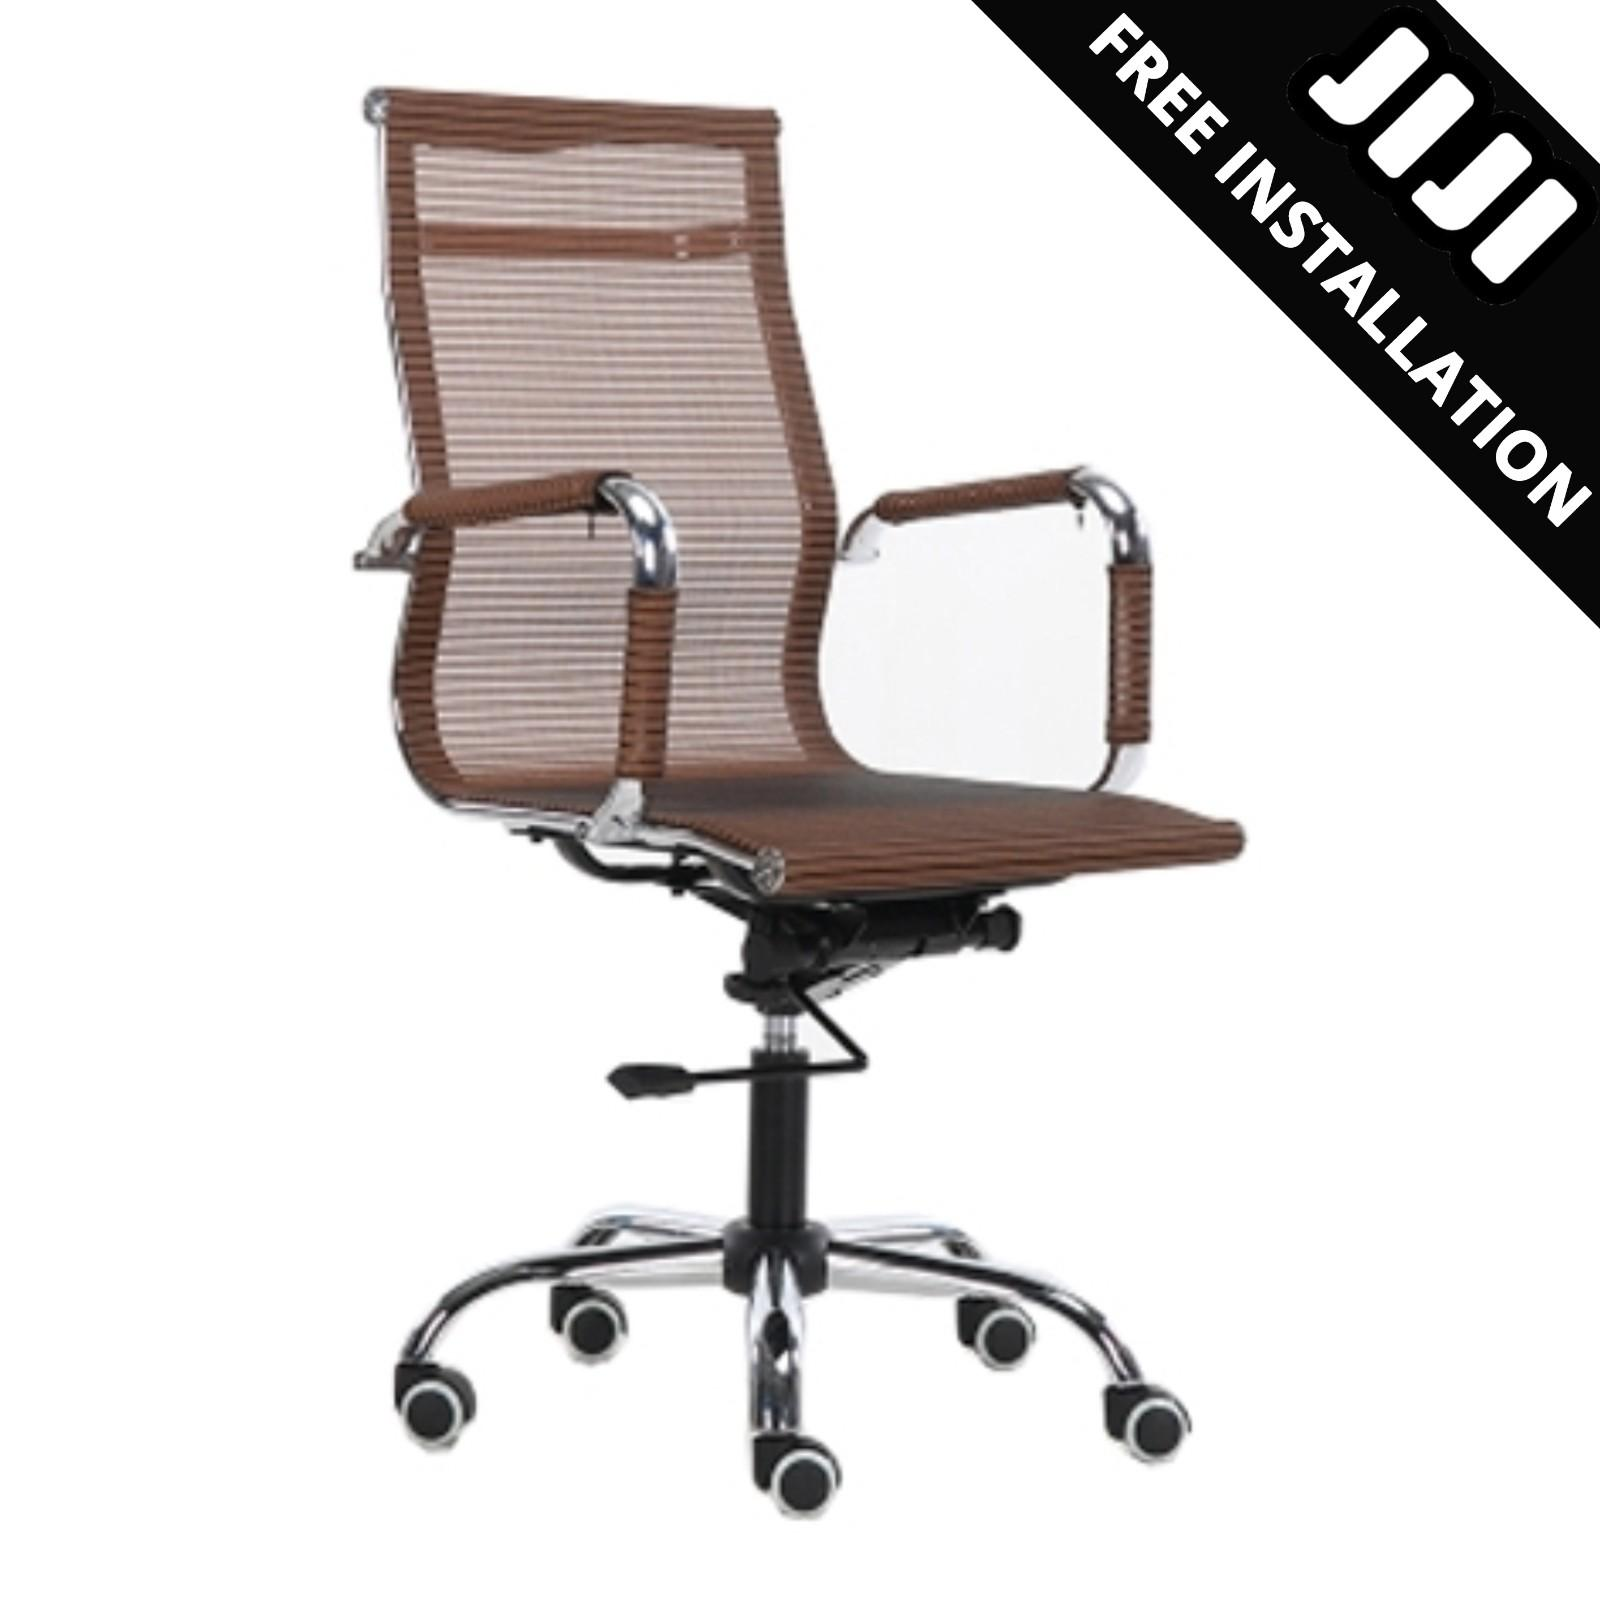 JIJI Manager Office Chair - MESH (Free Installation) - Office chairs /Study chair/Gaming chair/Ergonomic/ Free 12 Months Warranty (SG)